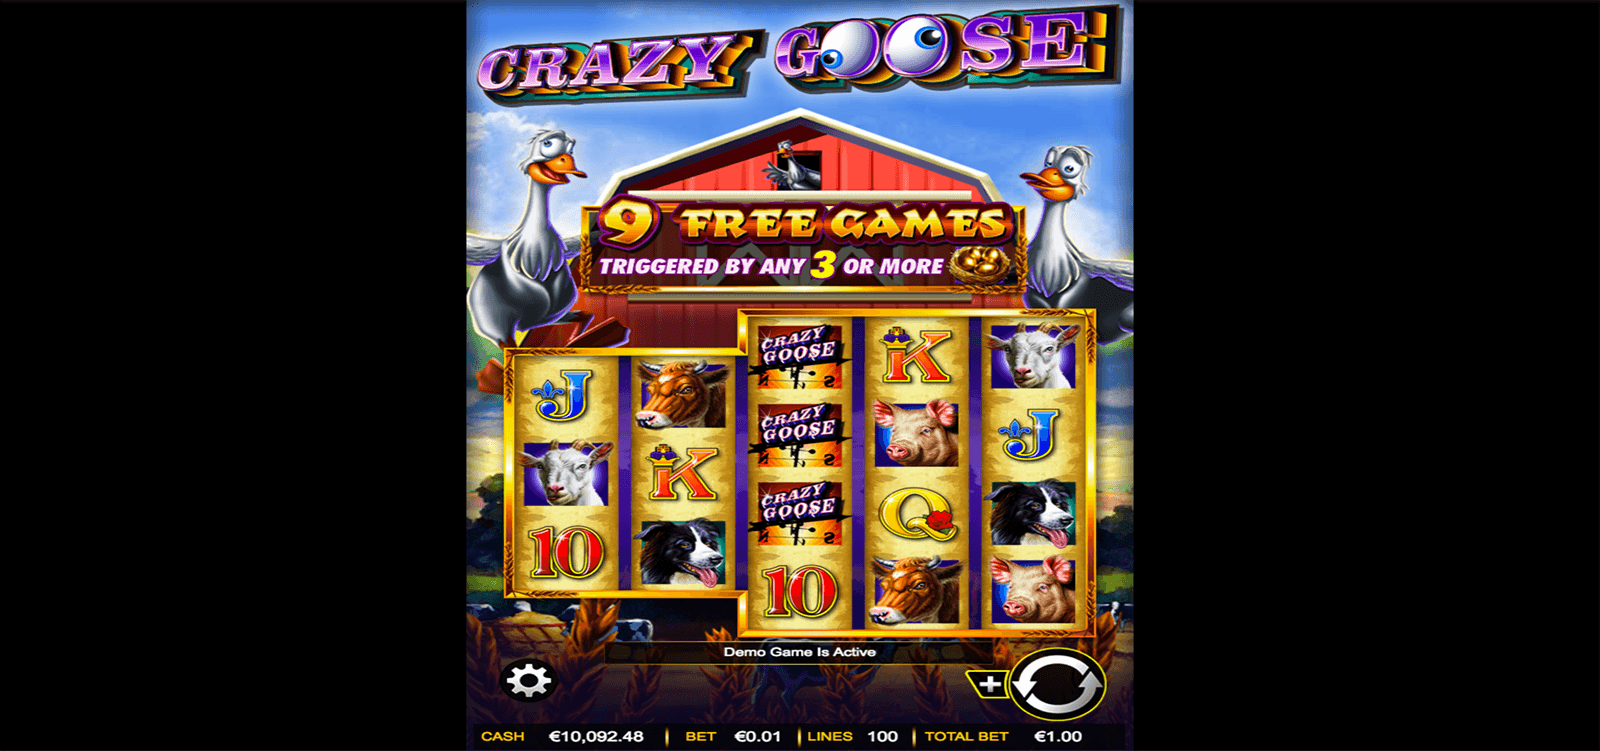 CRAZY GOOSE AINSWORTH CASINO SLOTS